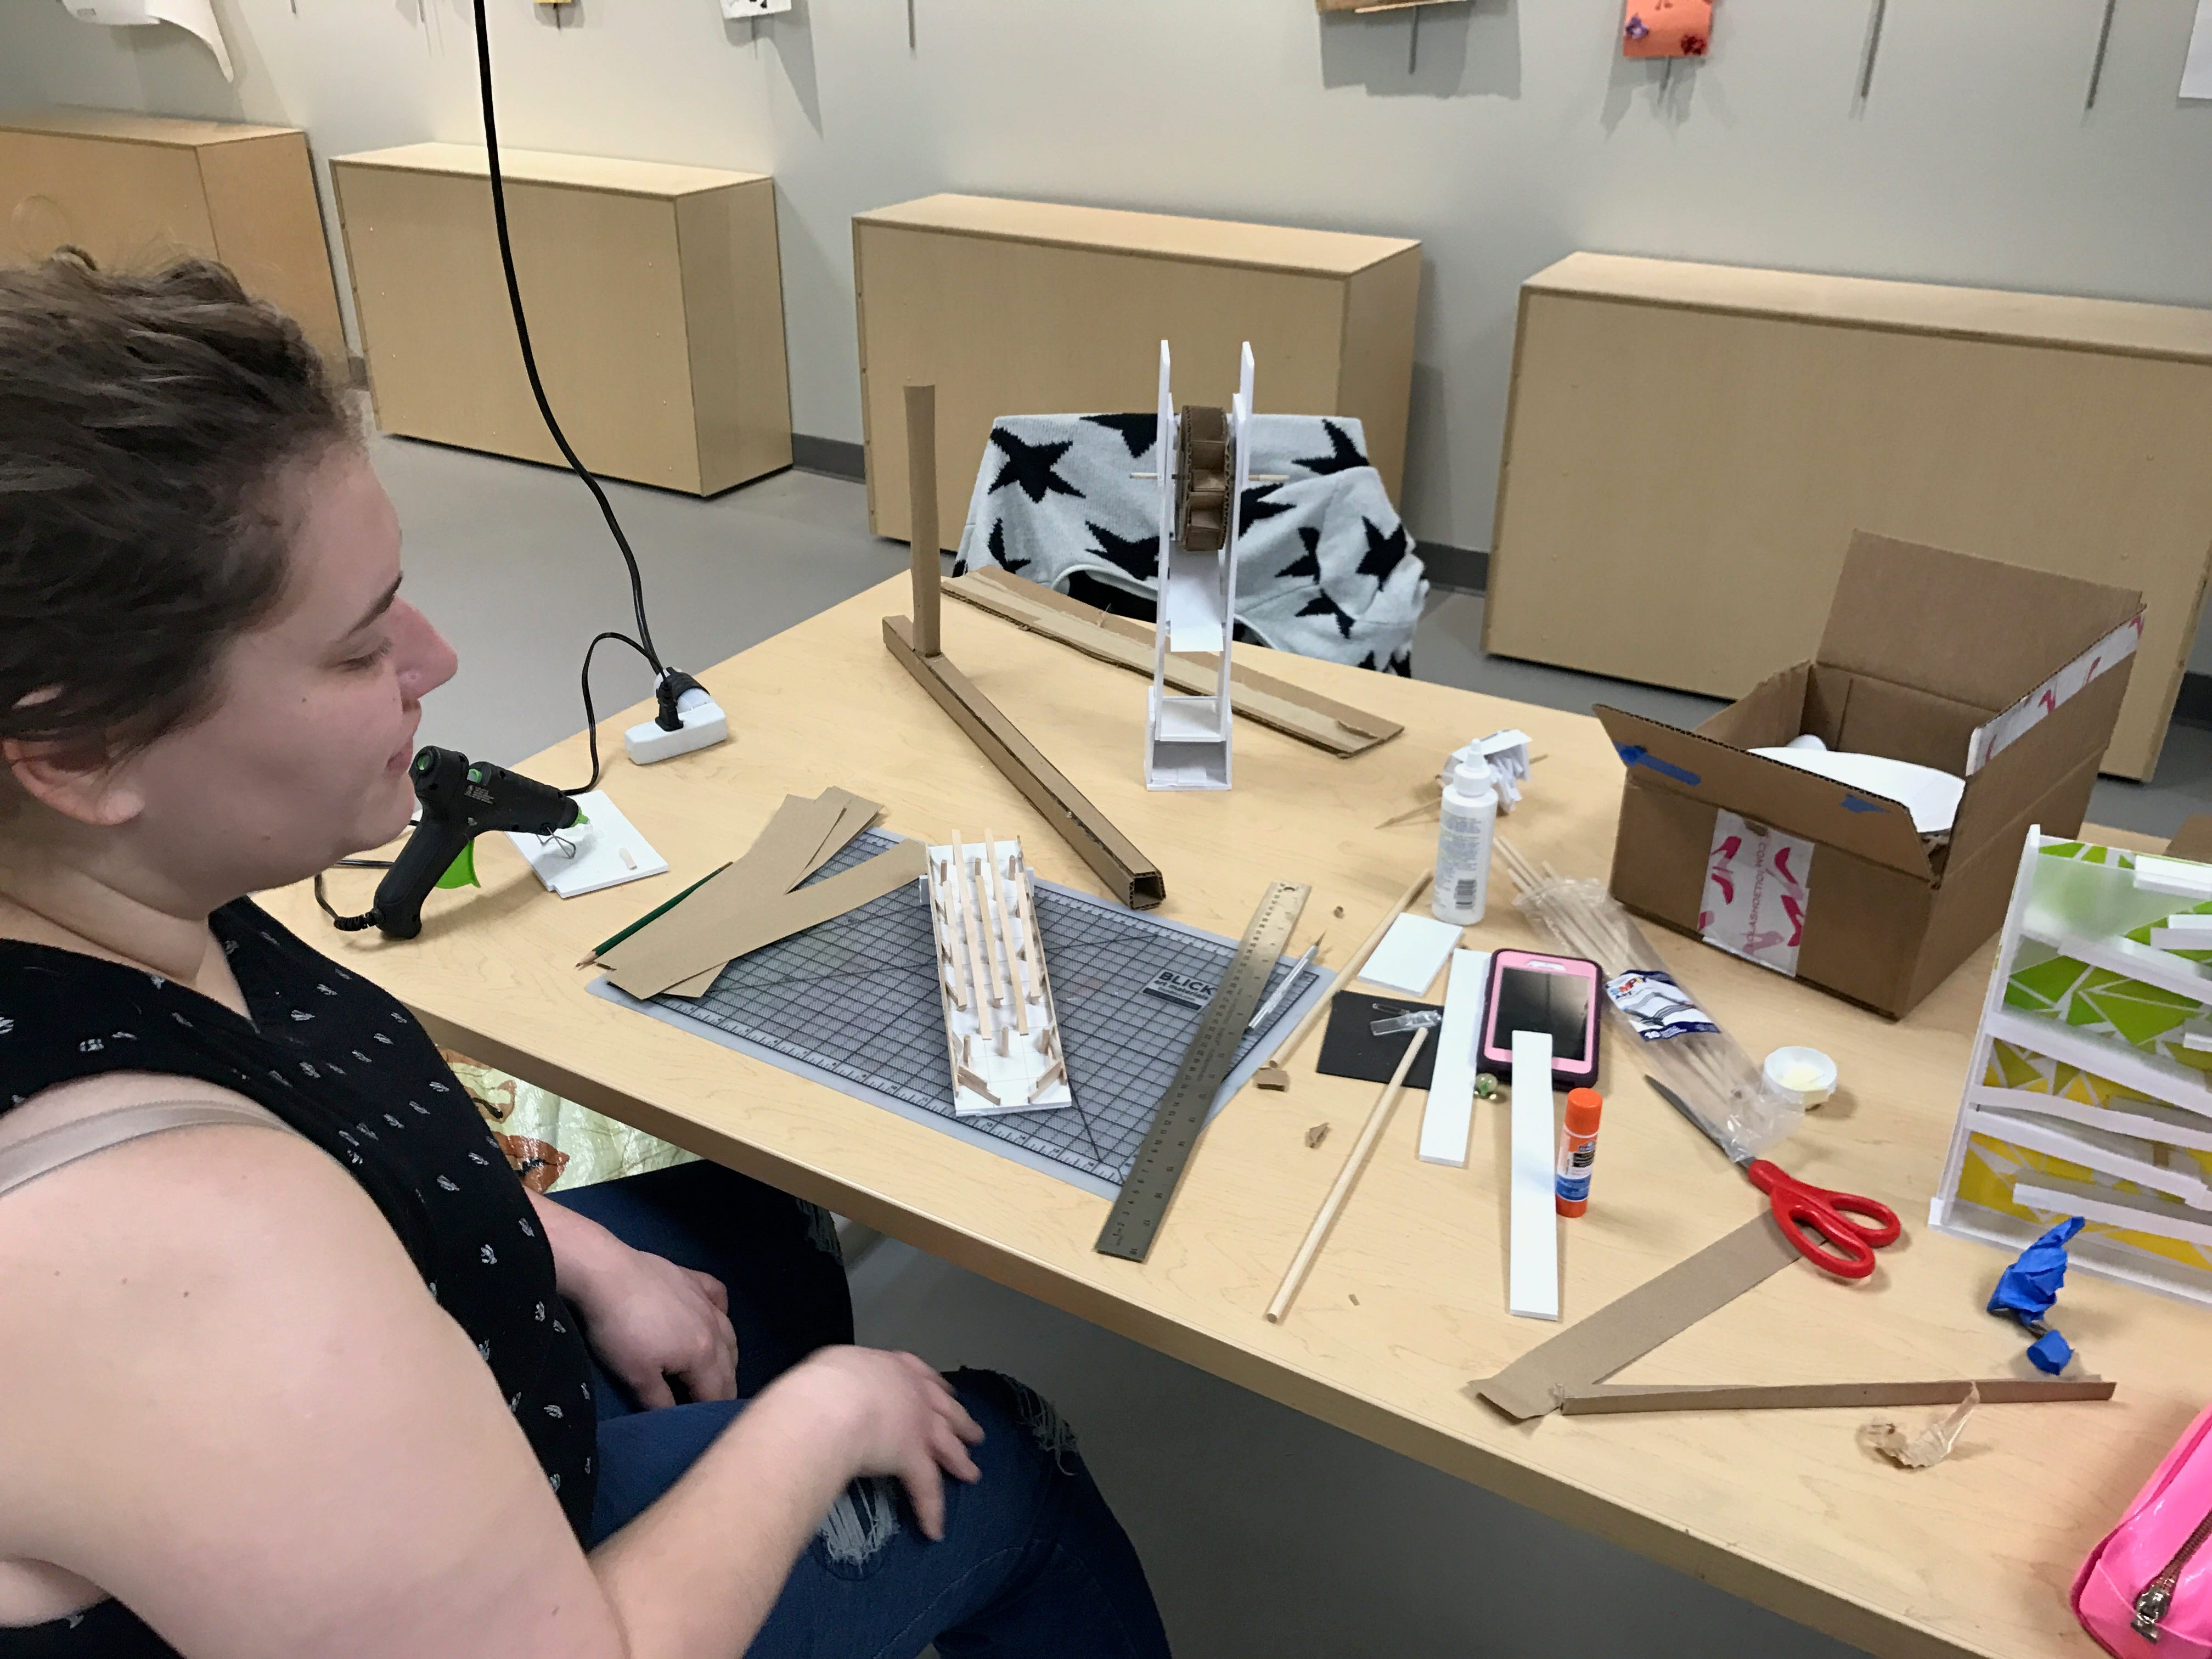 Adrianne Powell, 23, is a student at IVY Tech Community College and uses Ignite in Fishers often to work on school projects.